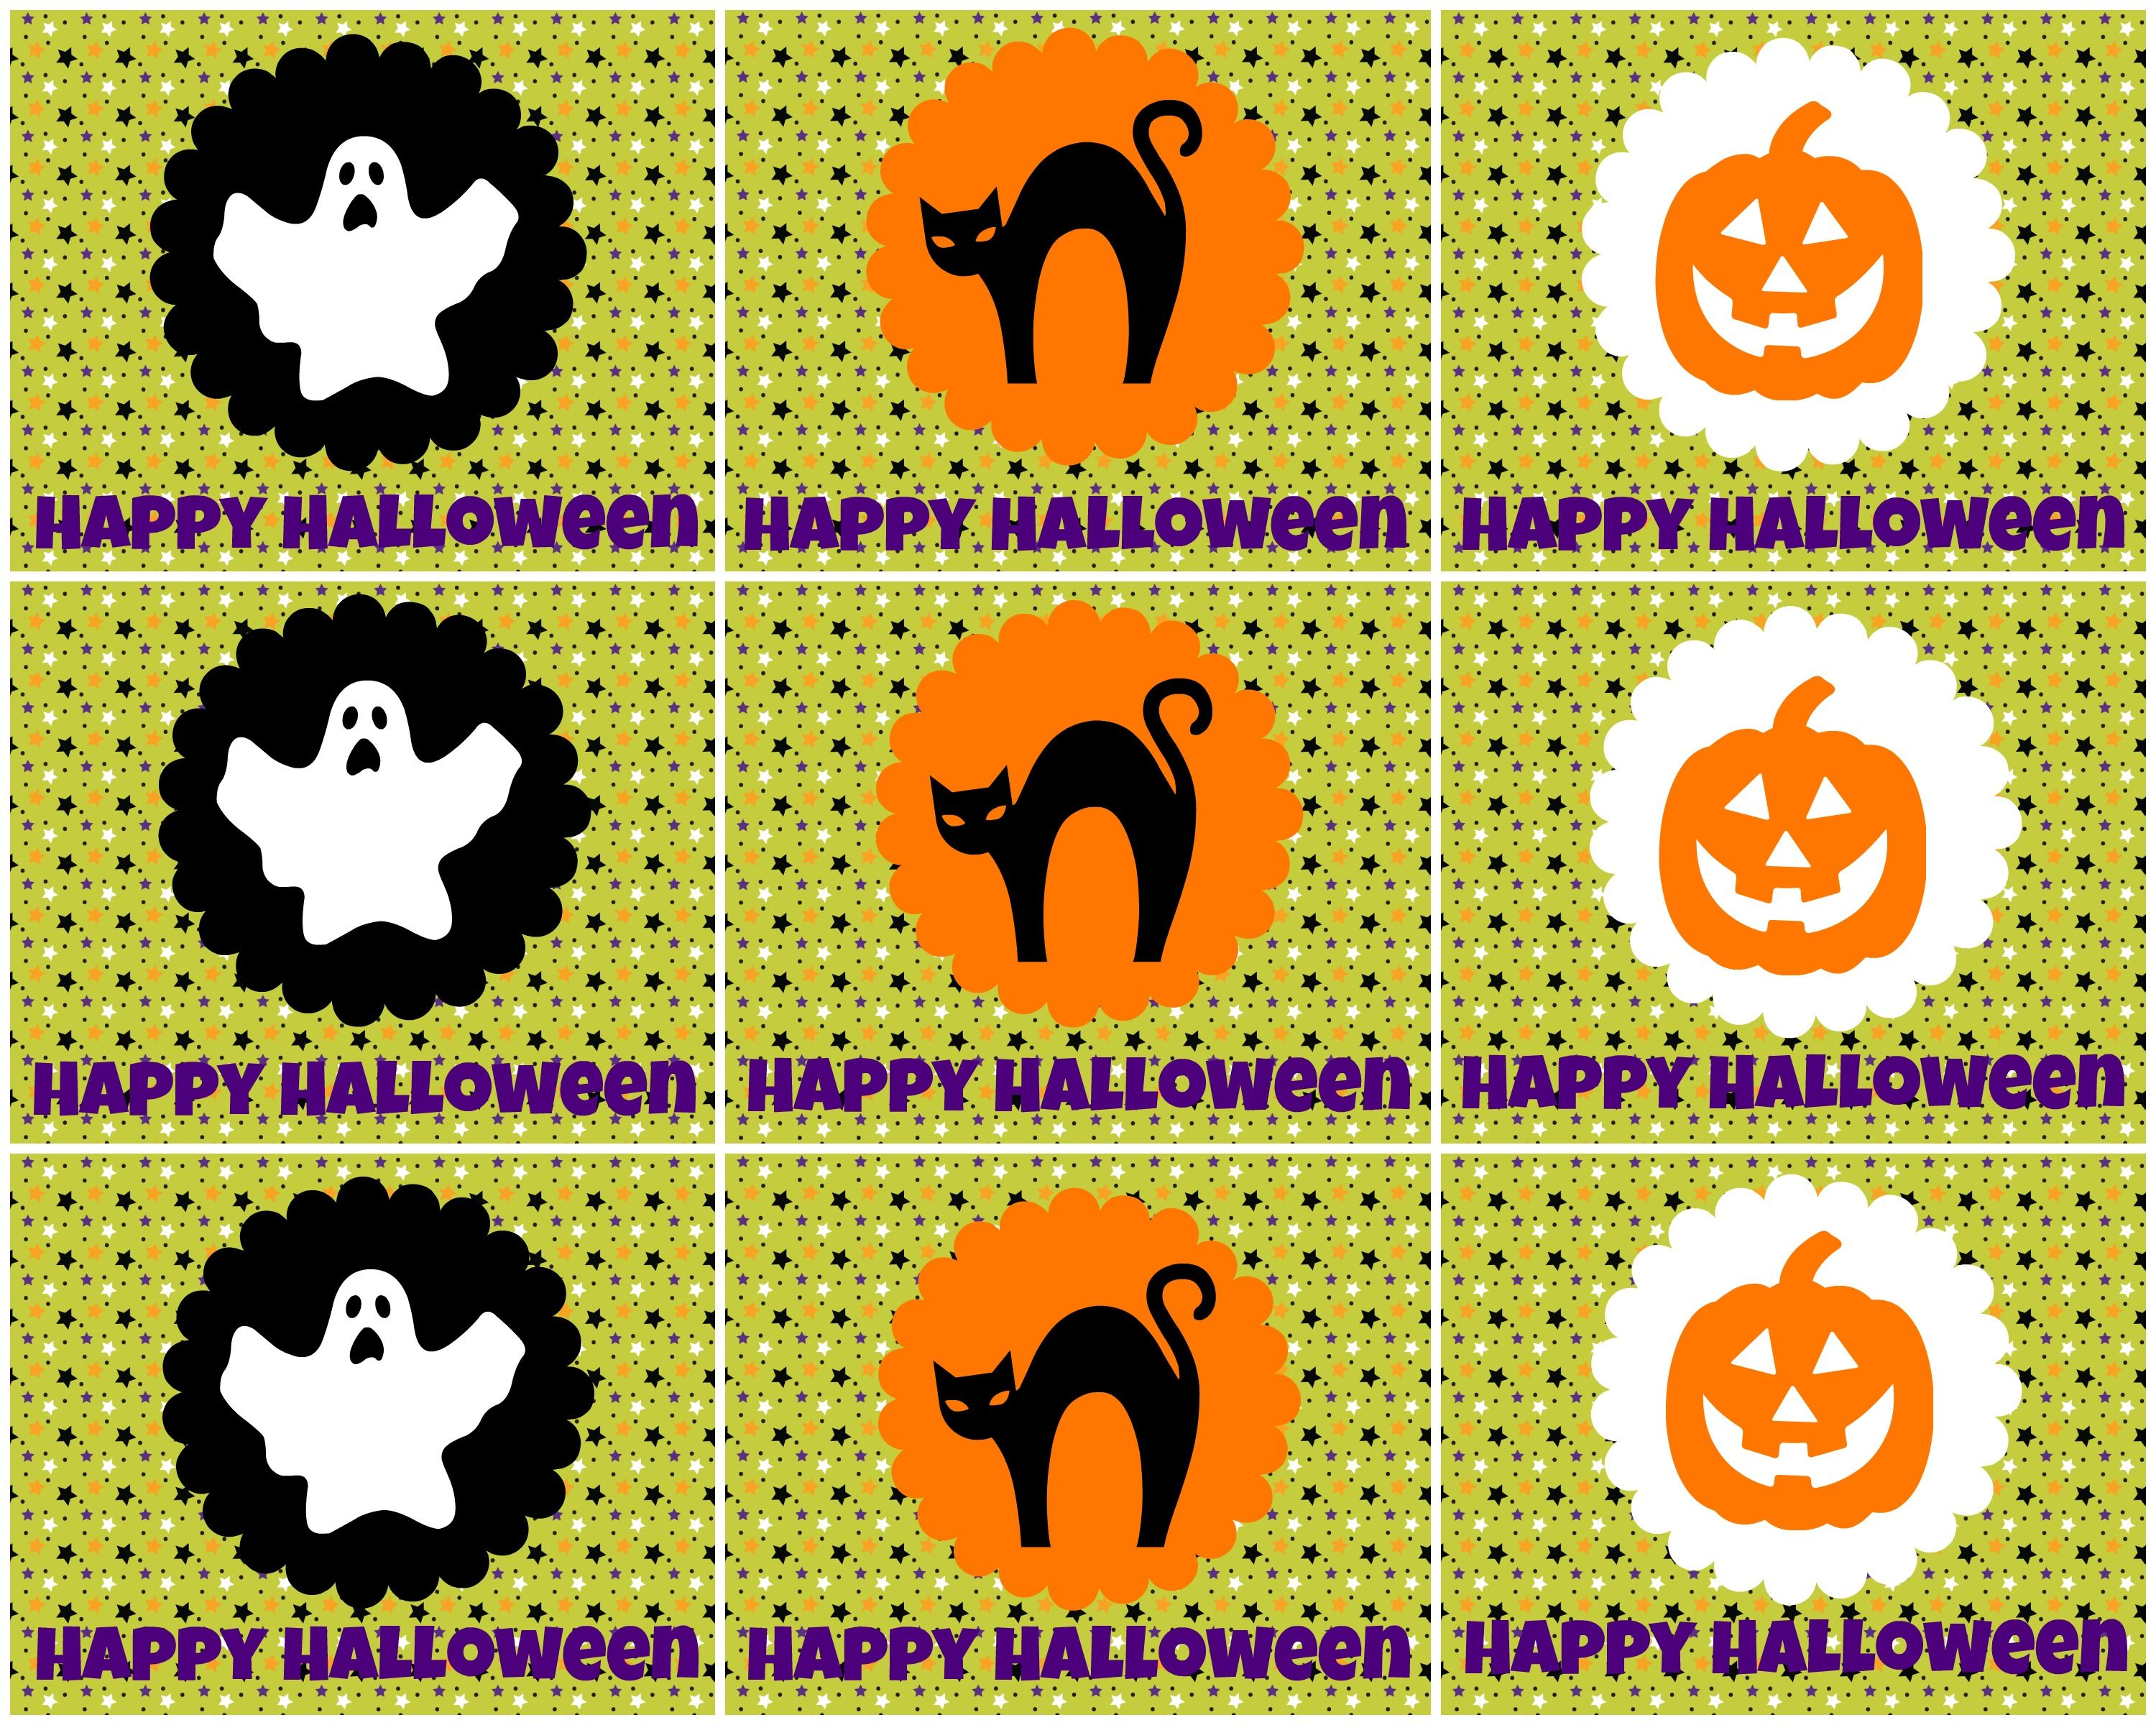 free printable halloween tags for treat bags labels and more - Halloween Pictures Free